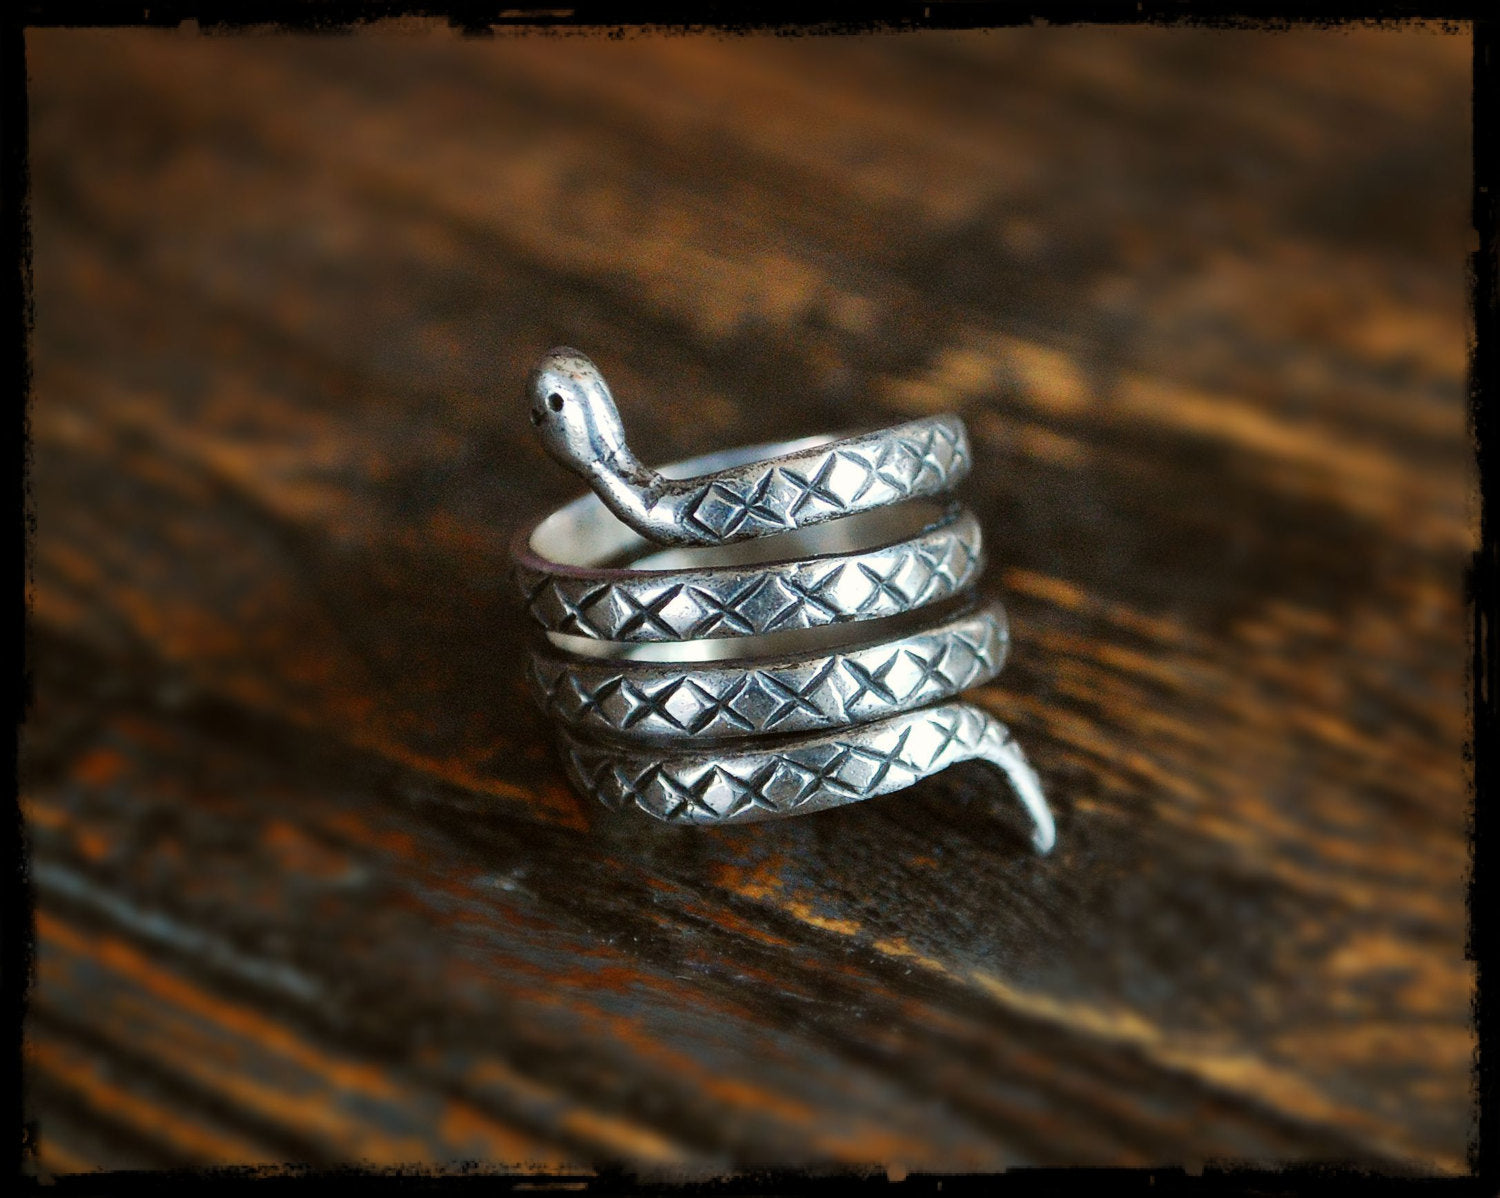 Snake Coil Ring from India - Size 7 - Gypsy Boho Snake Ring - Ethnic Tribal Indian Coil Snake Ring - Snake Ring